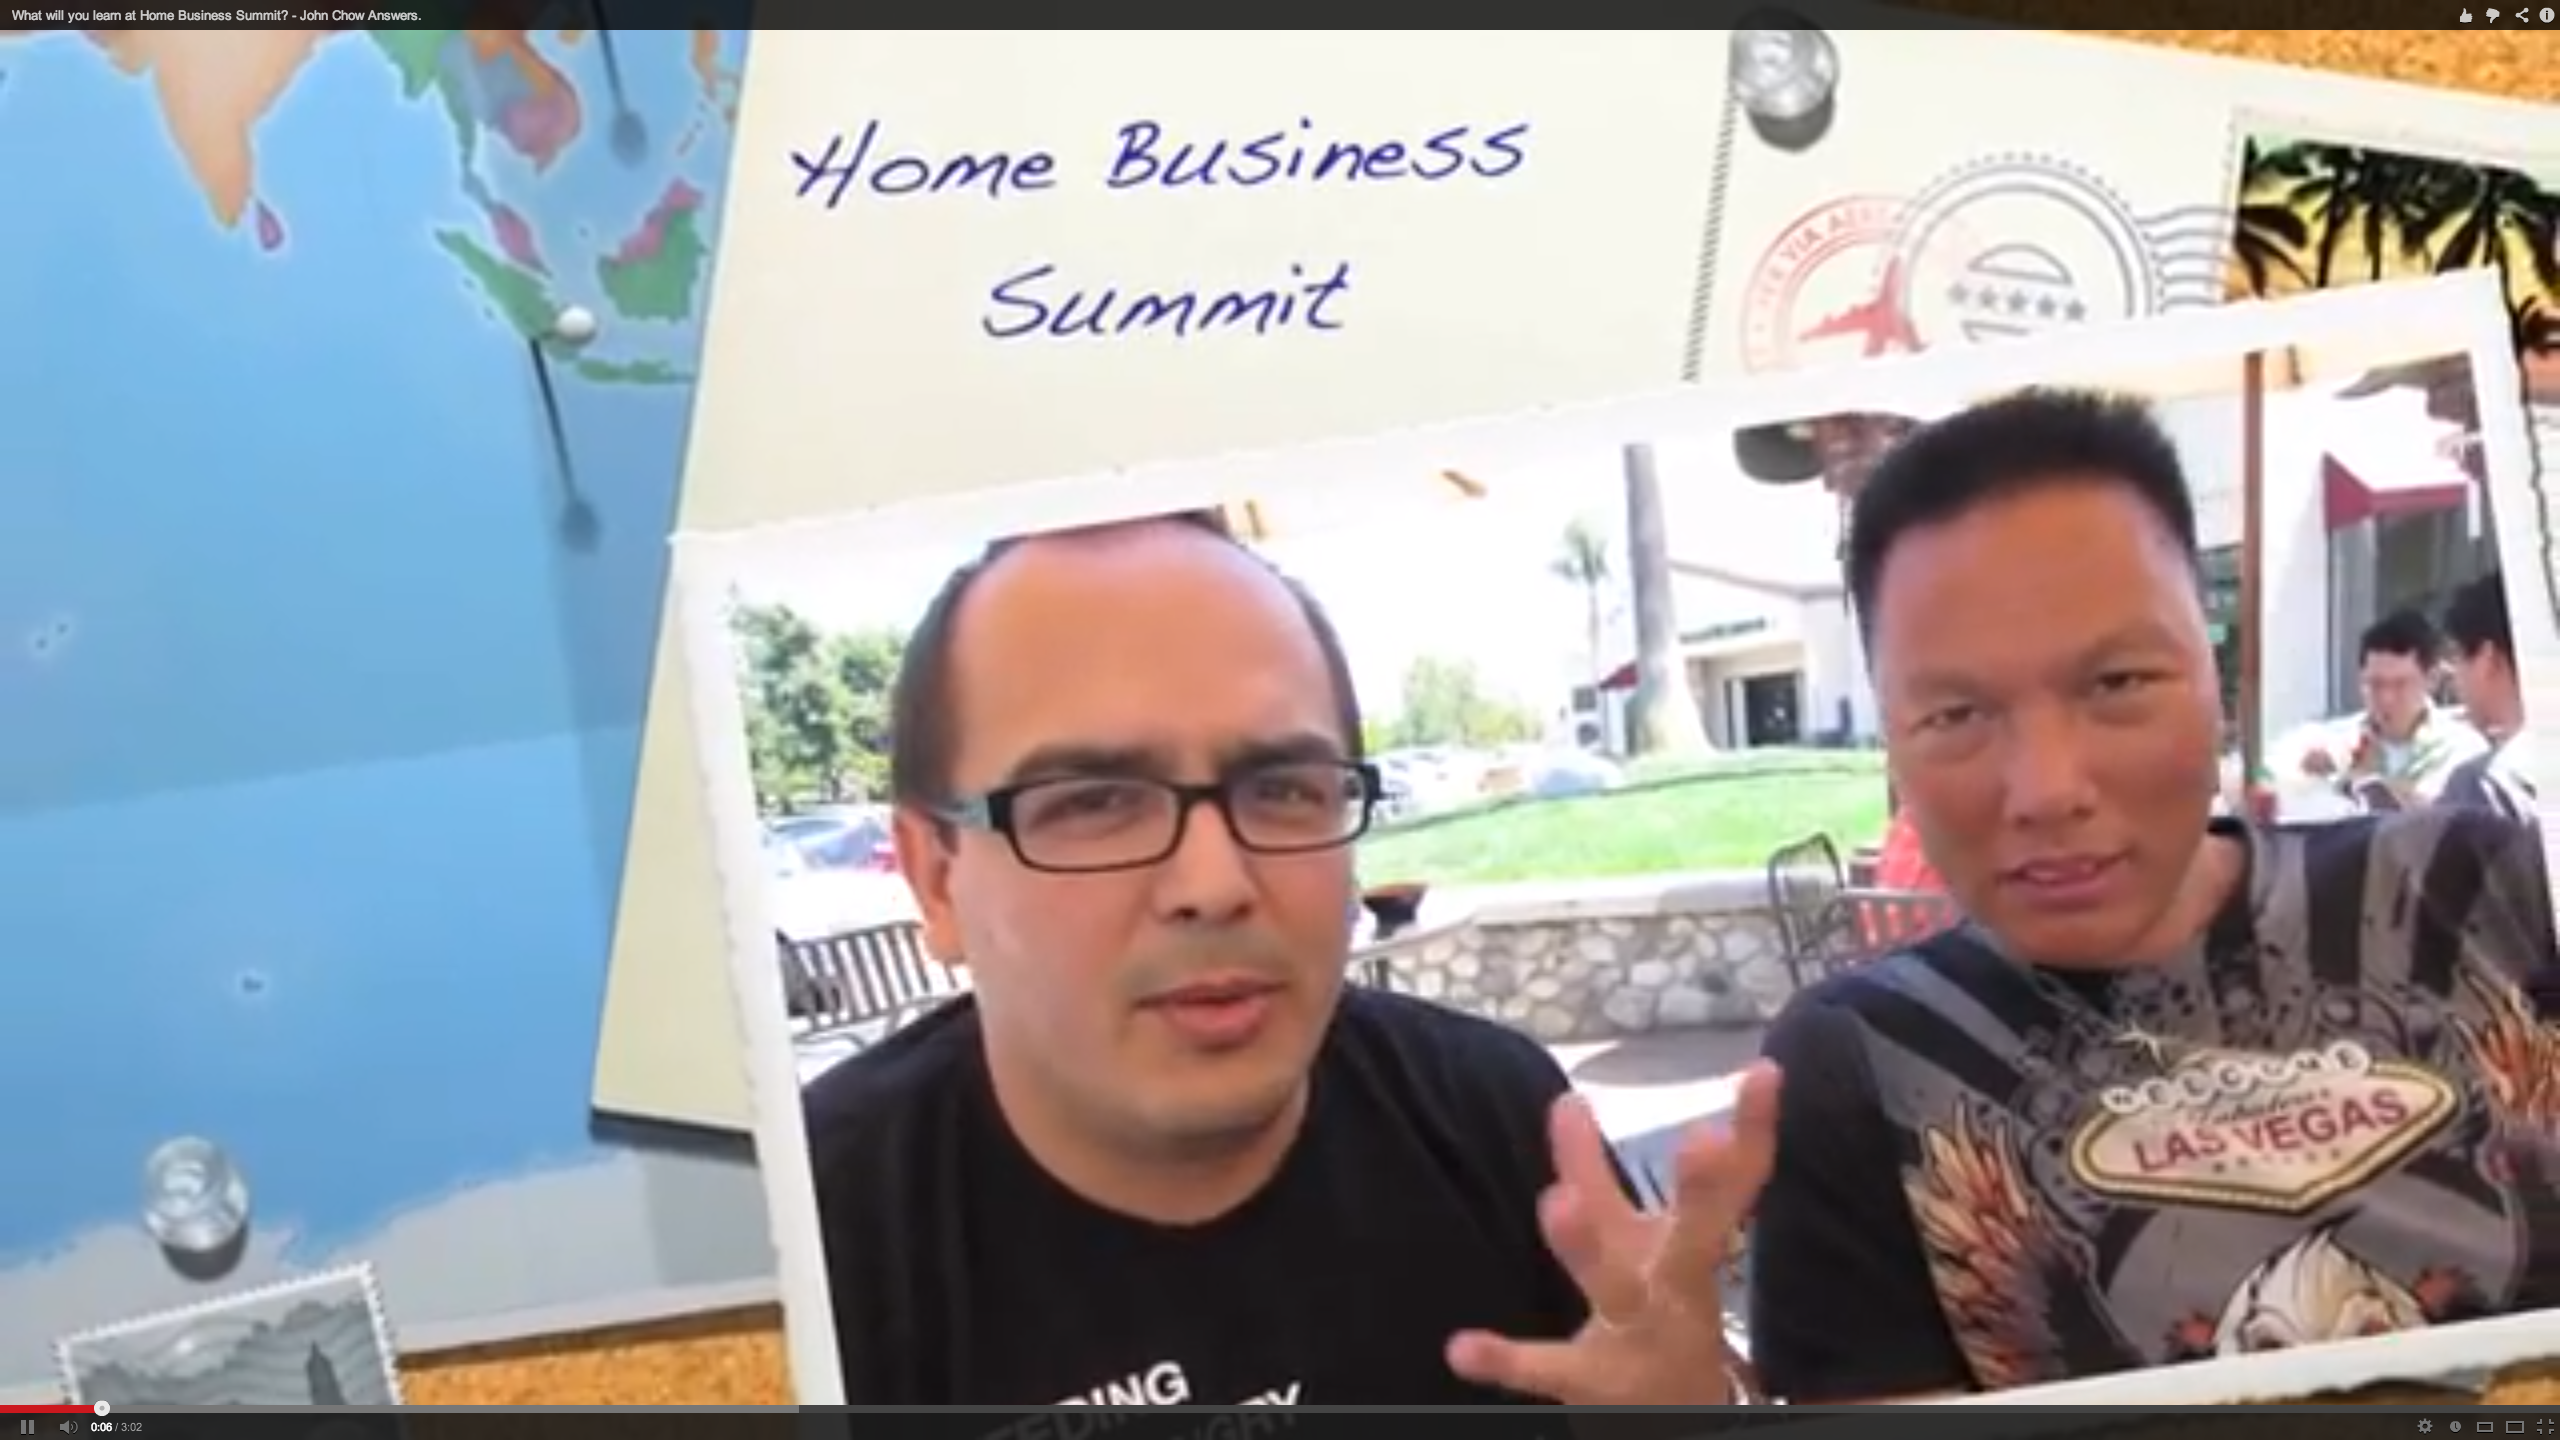 What will you learn at the Home Business Summit?